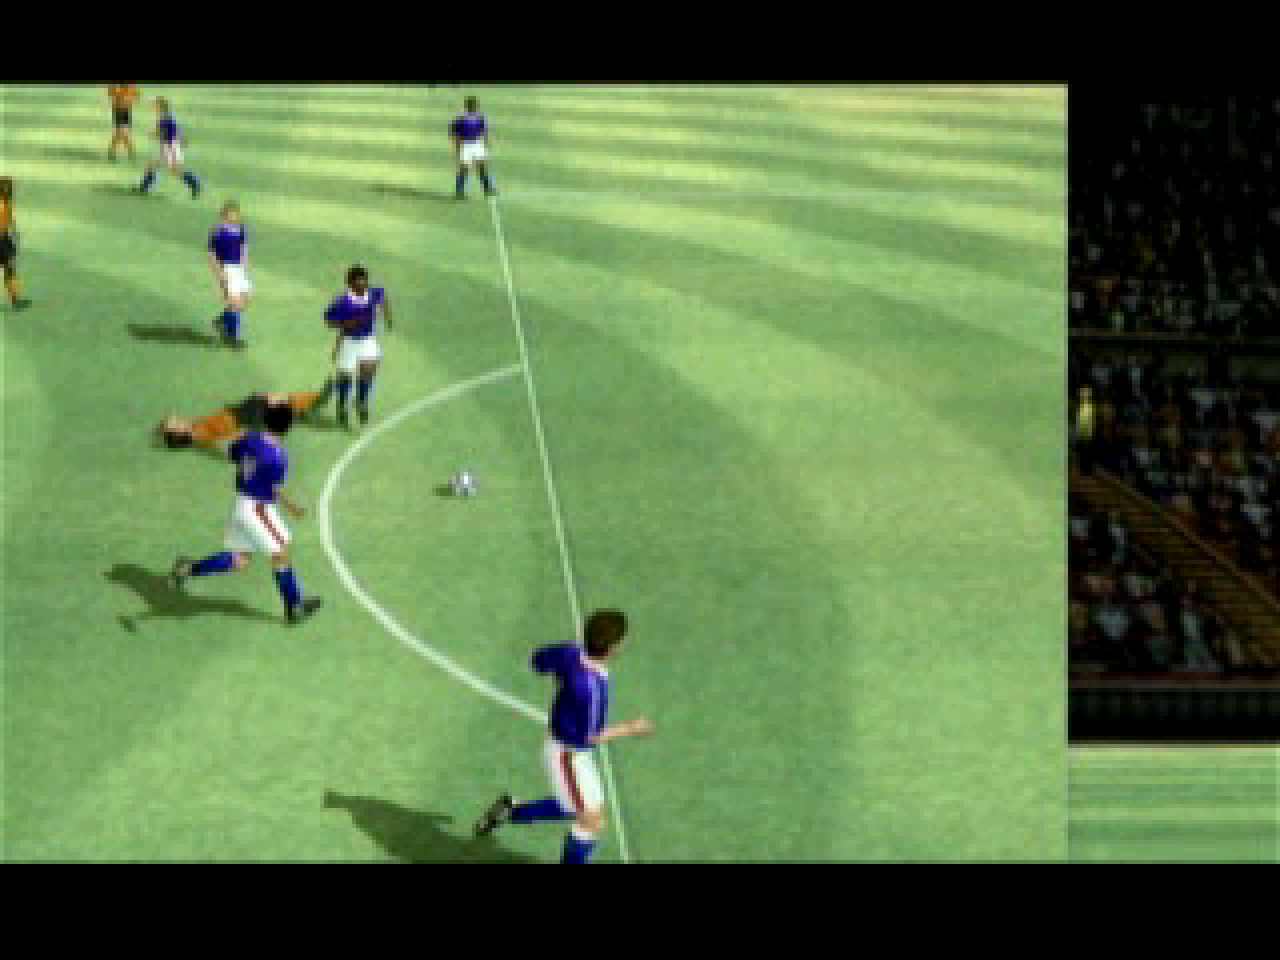 https://s3.eu-west-3.amazonaws.com/games.anthony-dessalles.com/FIFA 2001 PS1 2020 - Screenshots/FIFA 2001-201123-182425.png